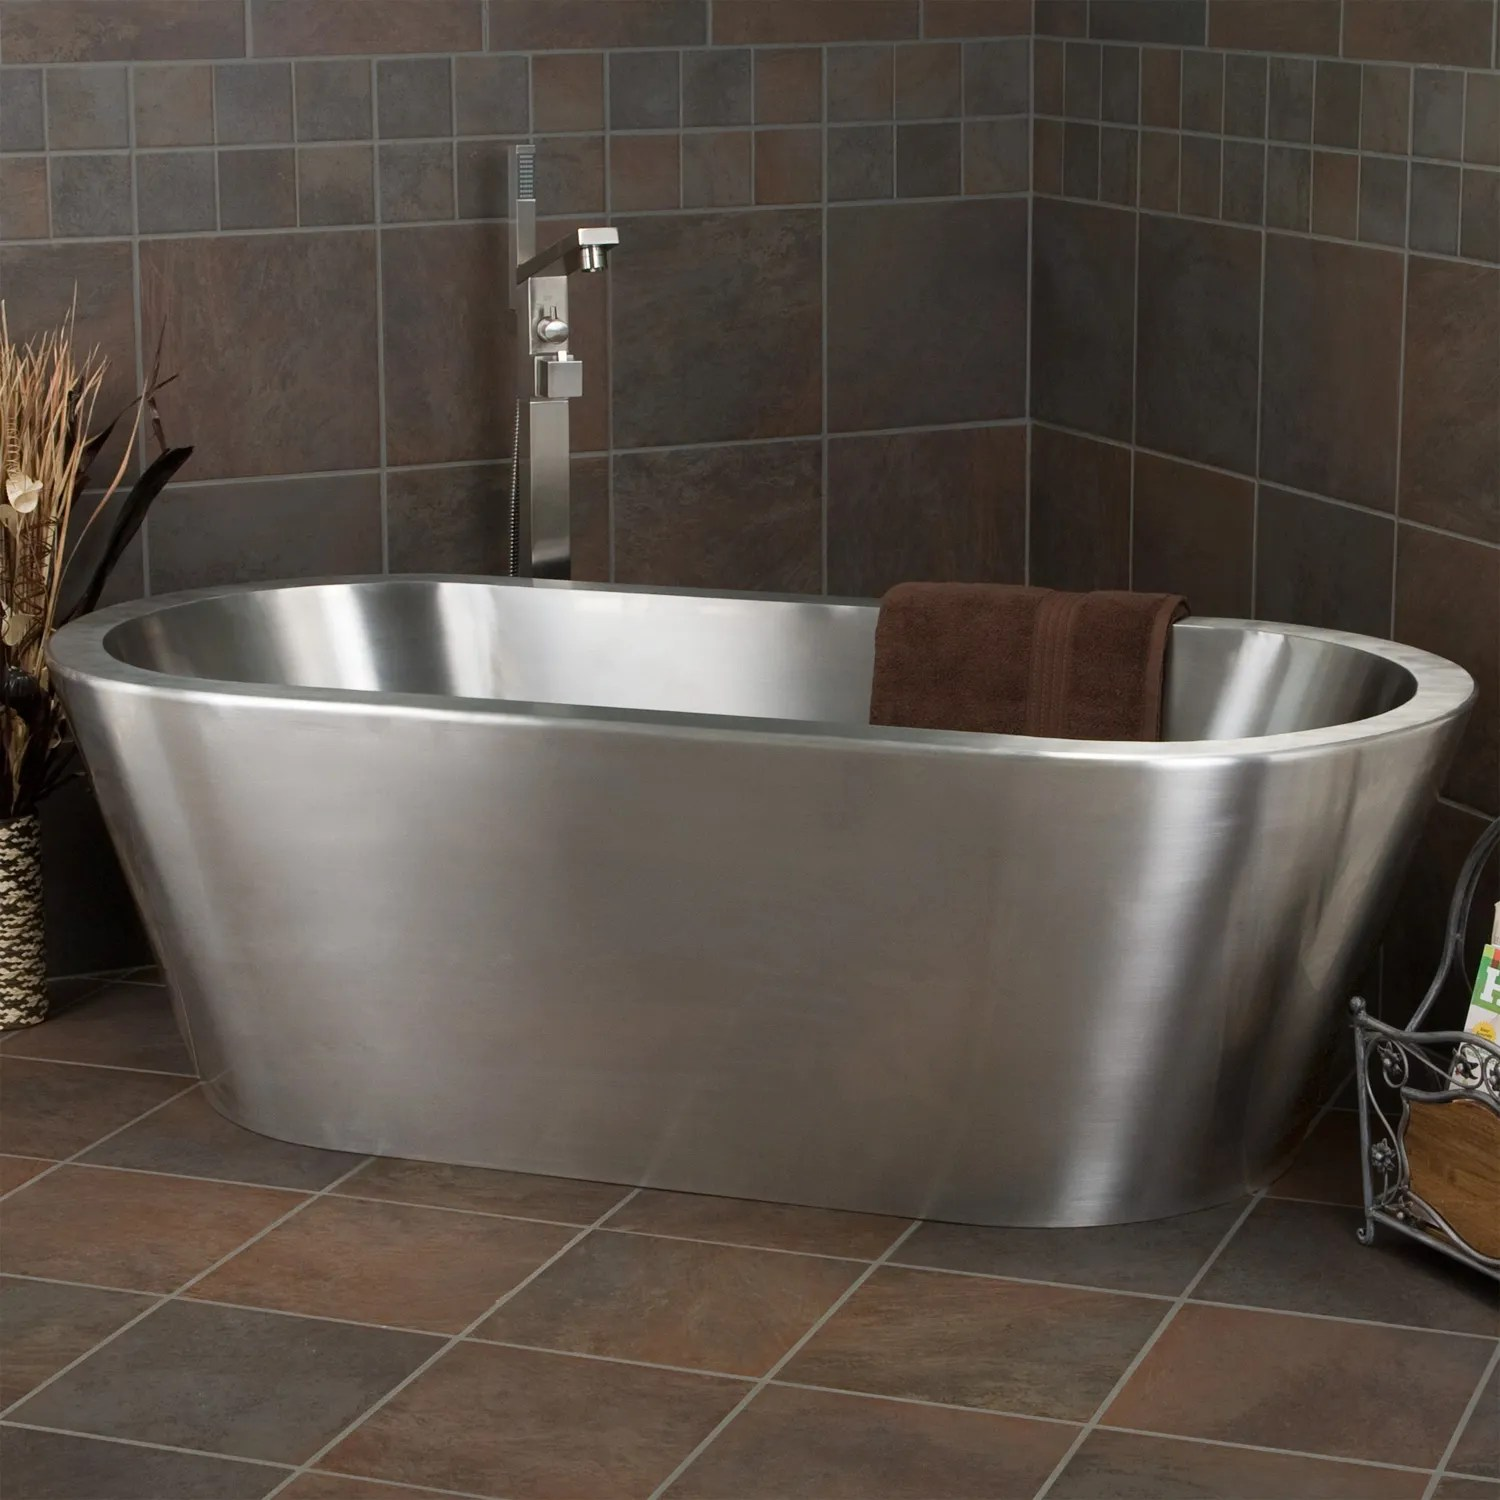 Stainless Steel Tub Steps for Round Soaking Tub  Brushed